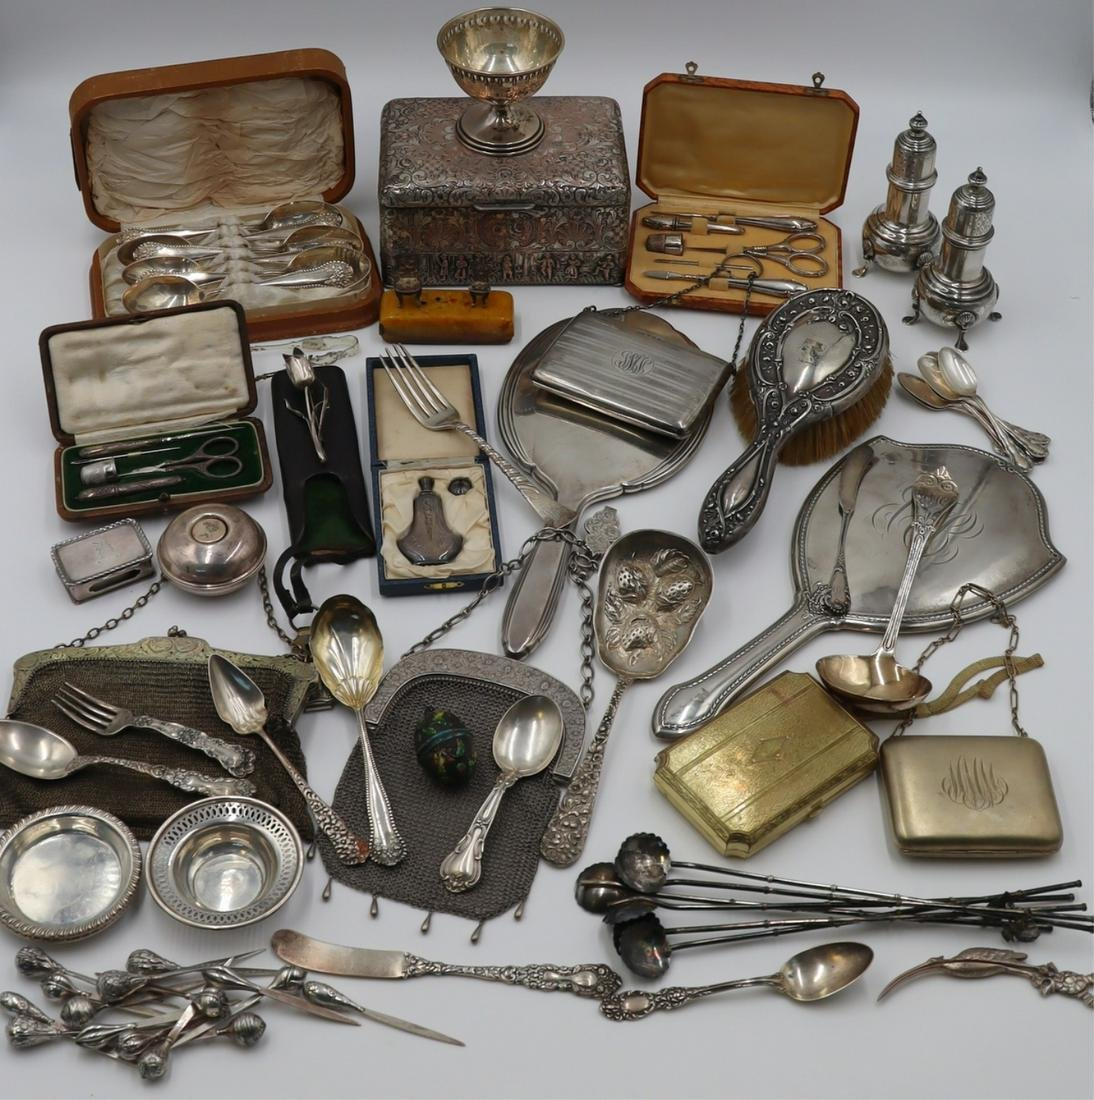 SILVER. Large Group of Assorted Silver & Objects.